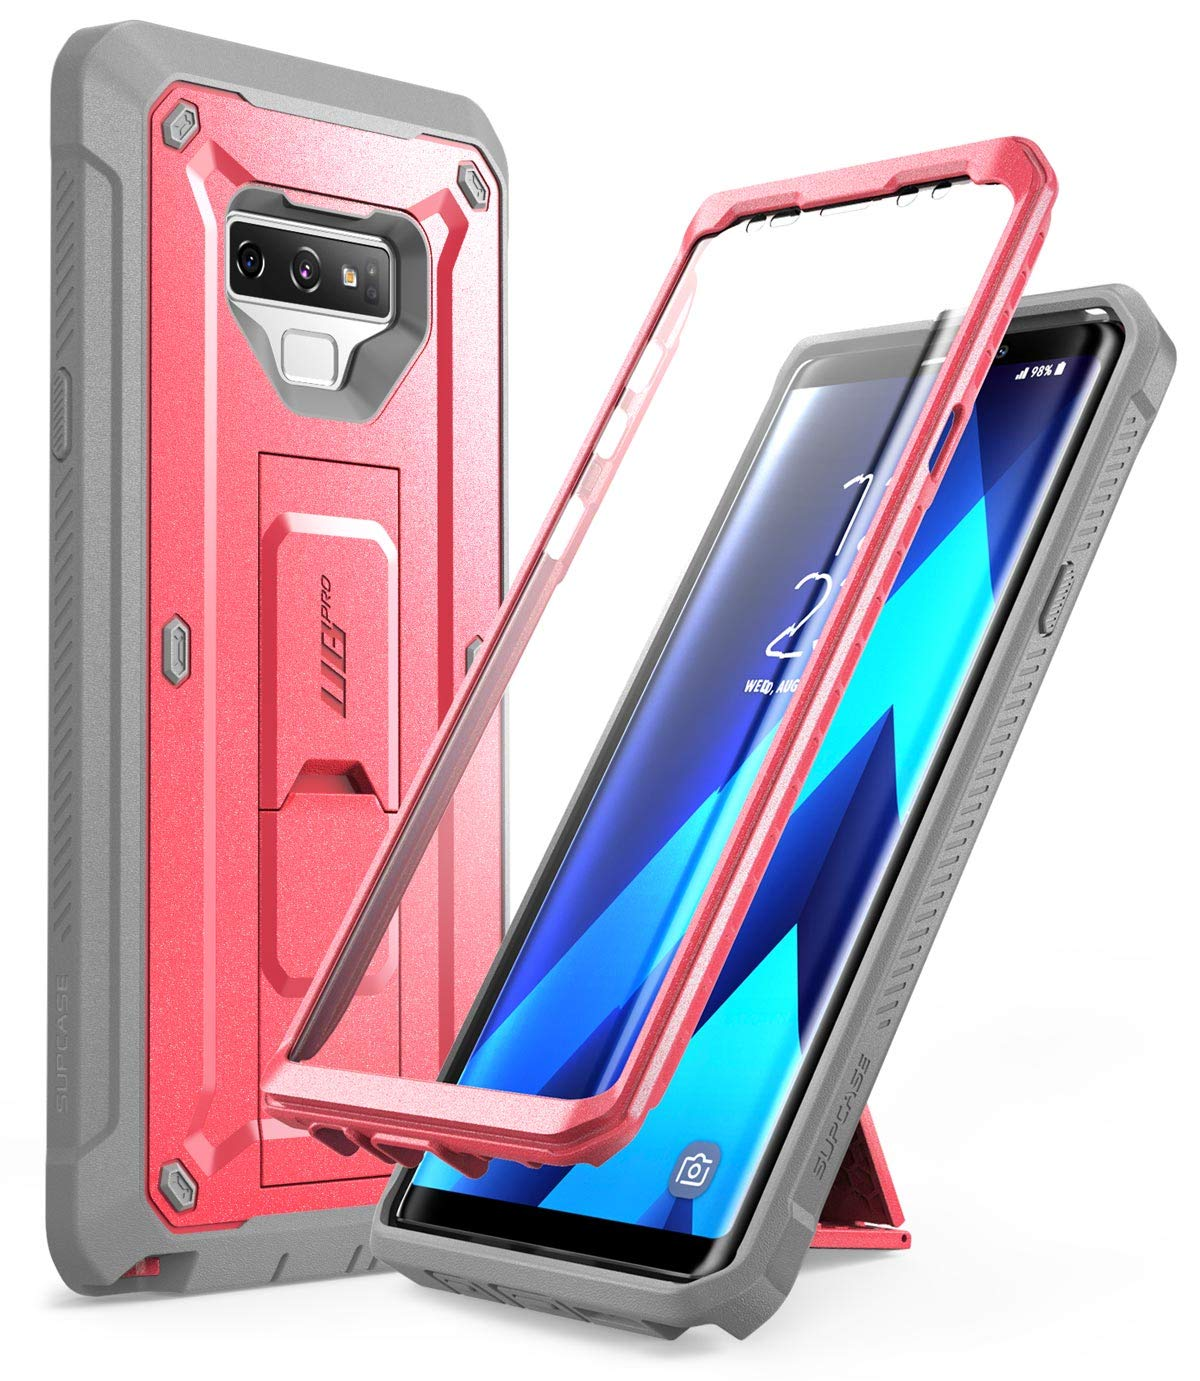 Samsung Galaxy Note 9 Case, SUPCASE Full-Body Rugged Holster Case with Built-in Screen Protector for Galaxy Note 9 (2018 Release), Unicorn Beetle Pro Series - Retail Package (Pink)